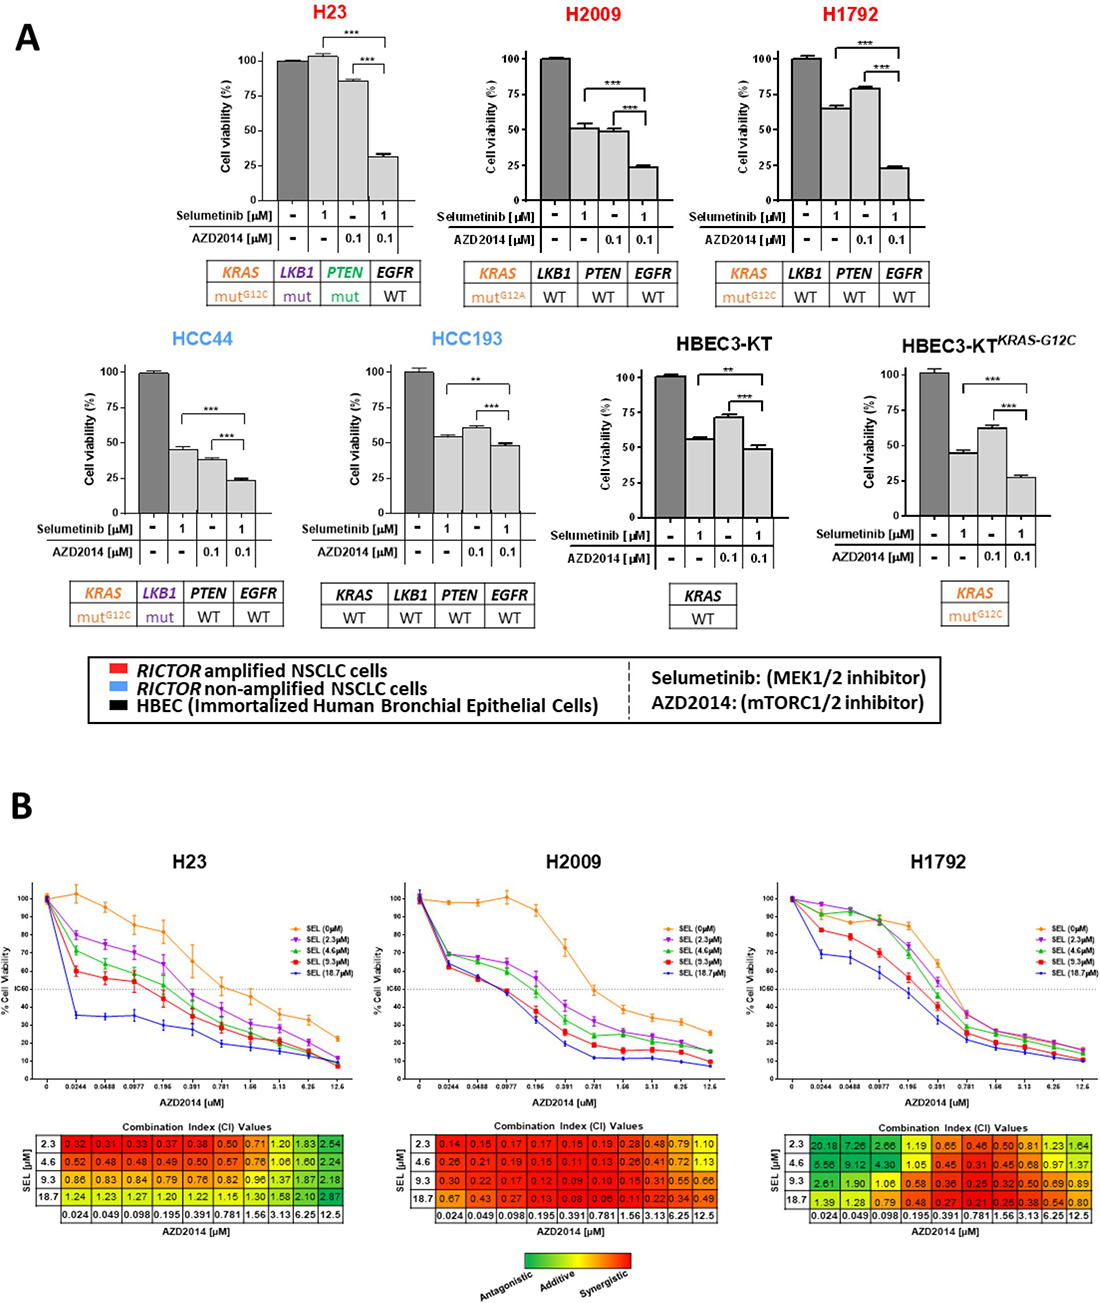 Combined mTORC1/2 and MEK inhibition is an effective therapeutic approach in RICTOR/KRAS-altered settings and results in synergistic anti-tumor effects.